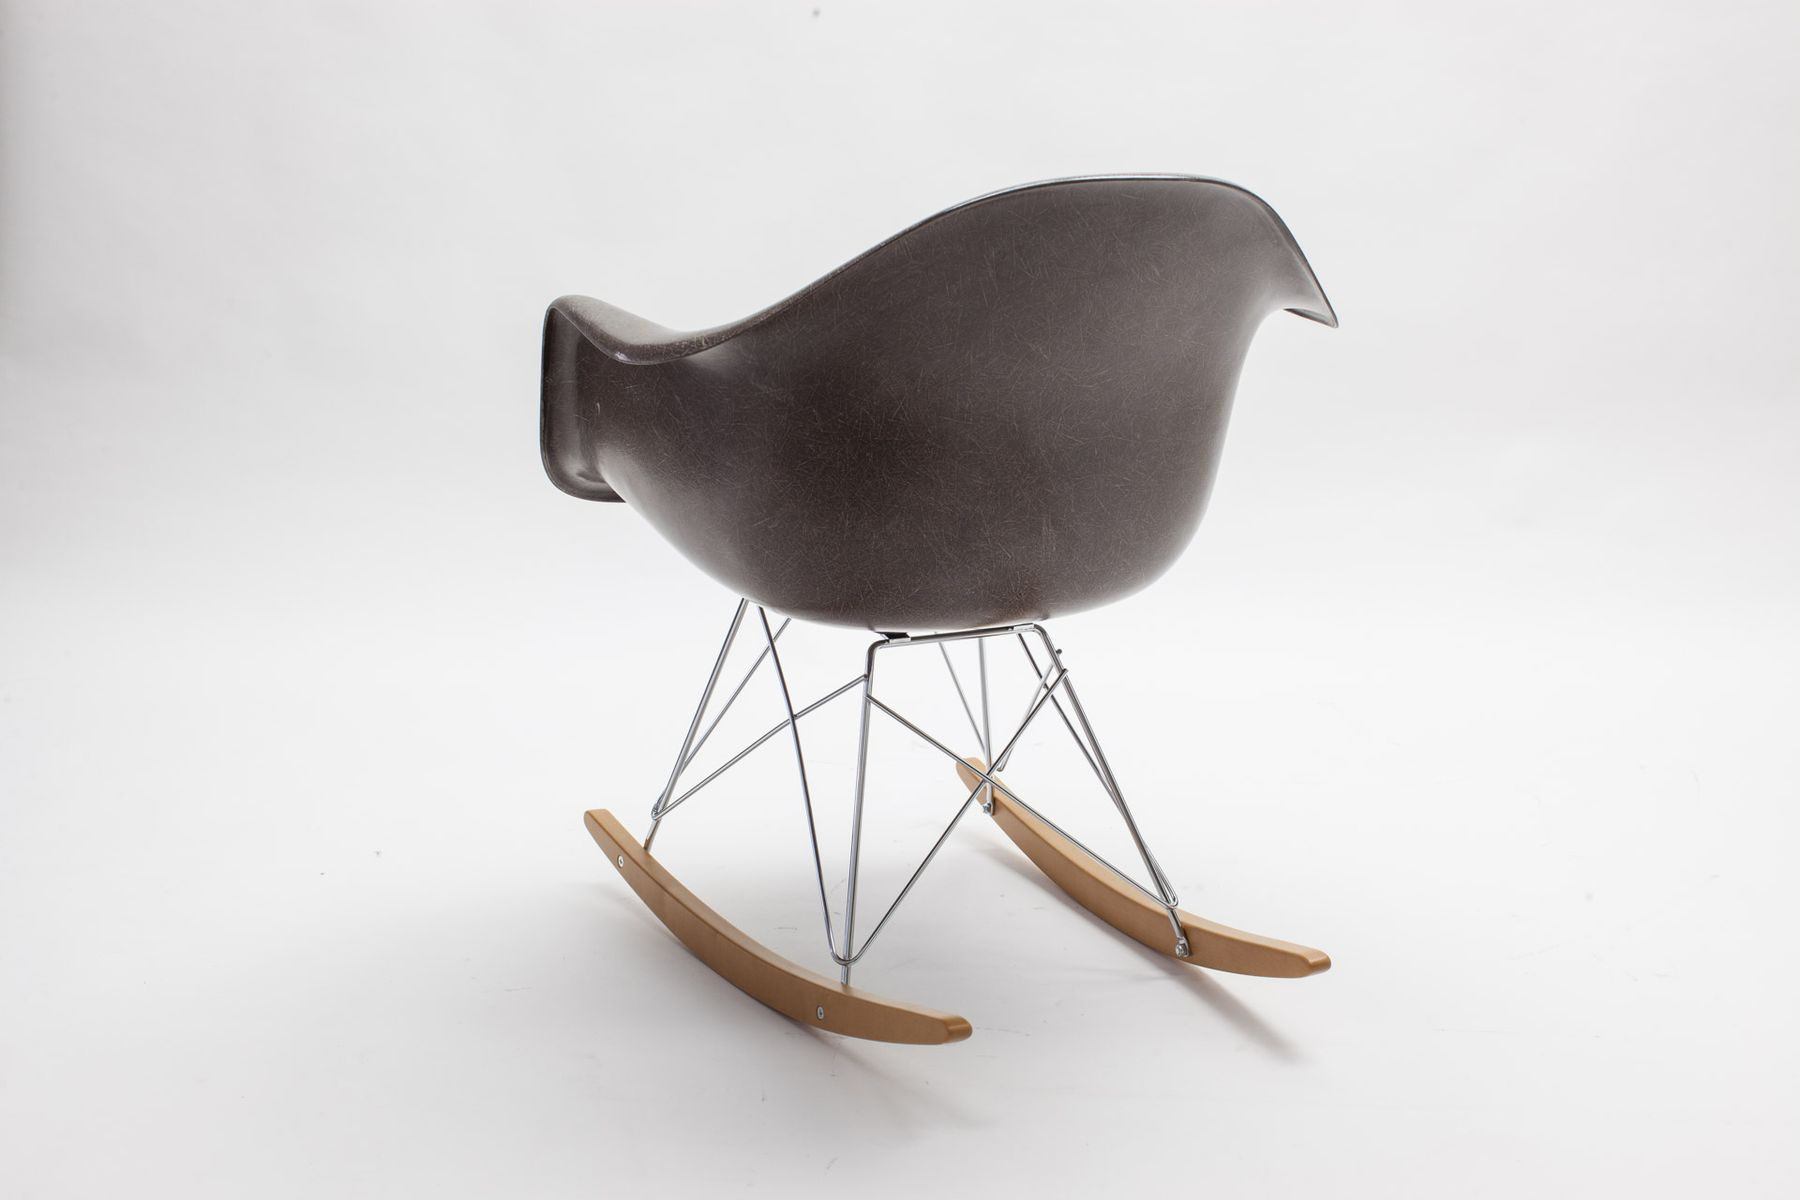 Fiberglass rar rocking chair by charles eames for vitra for Chaise rar eames vitra